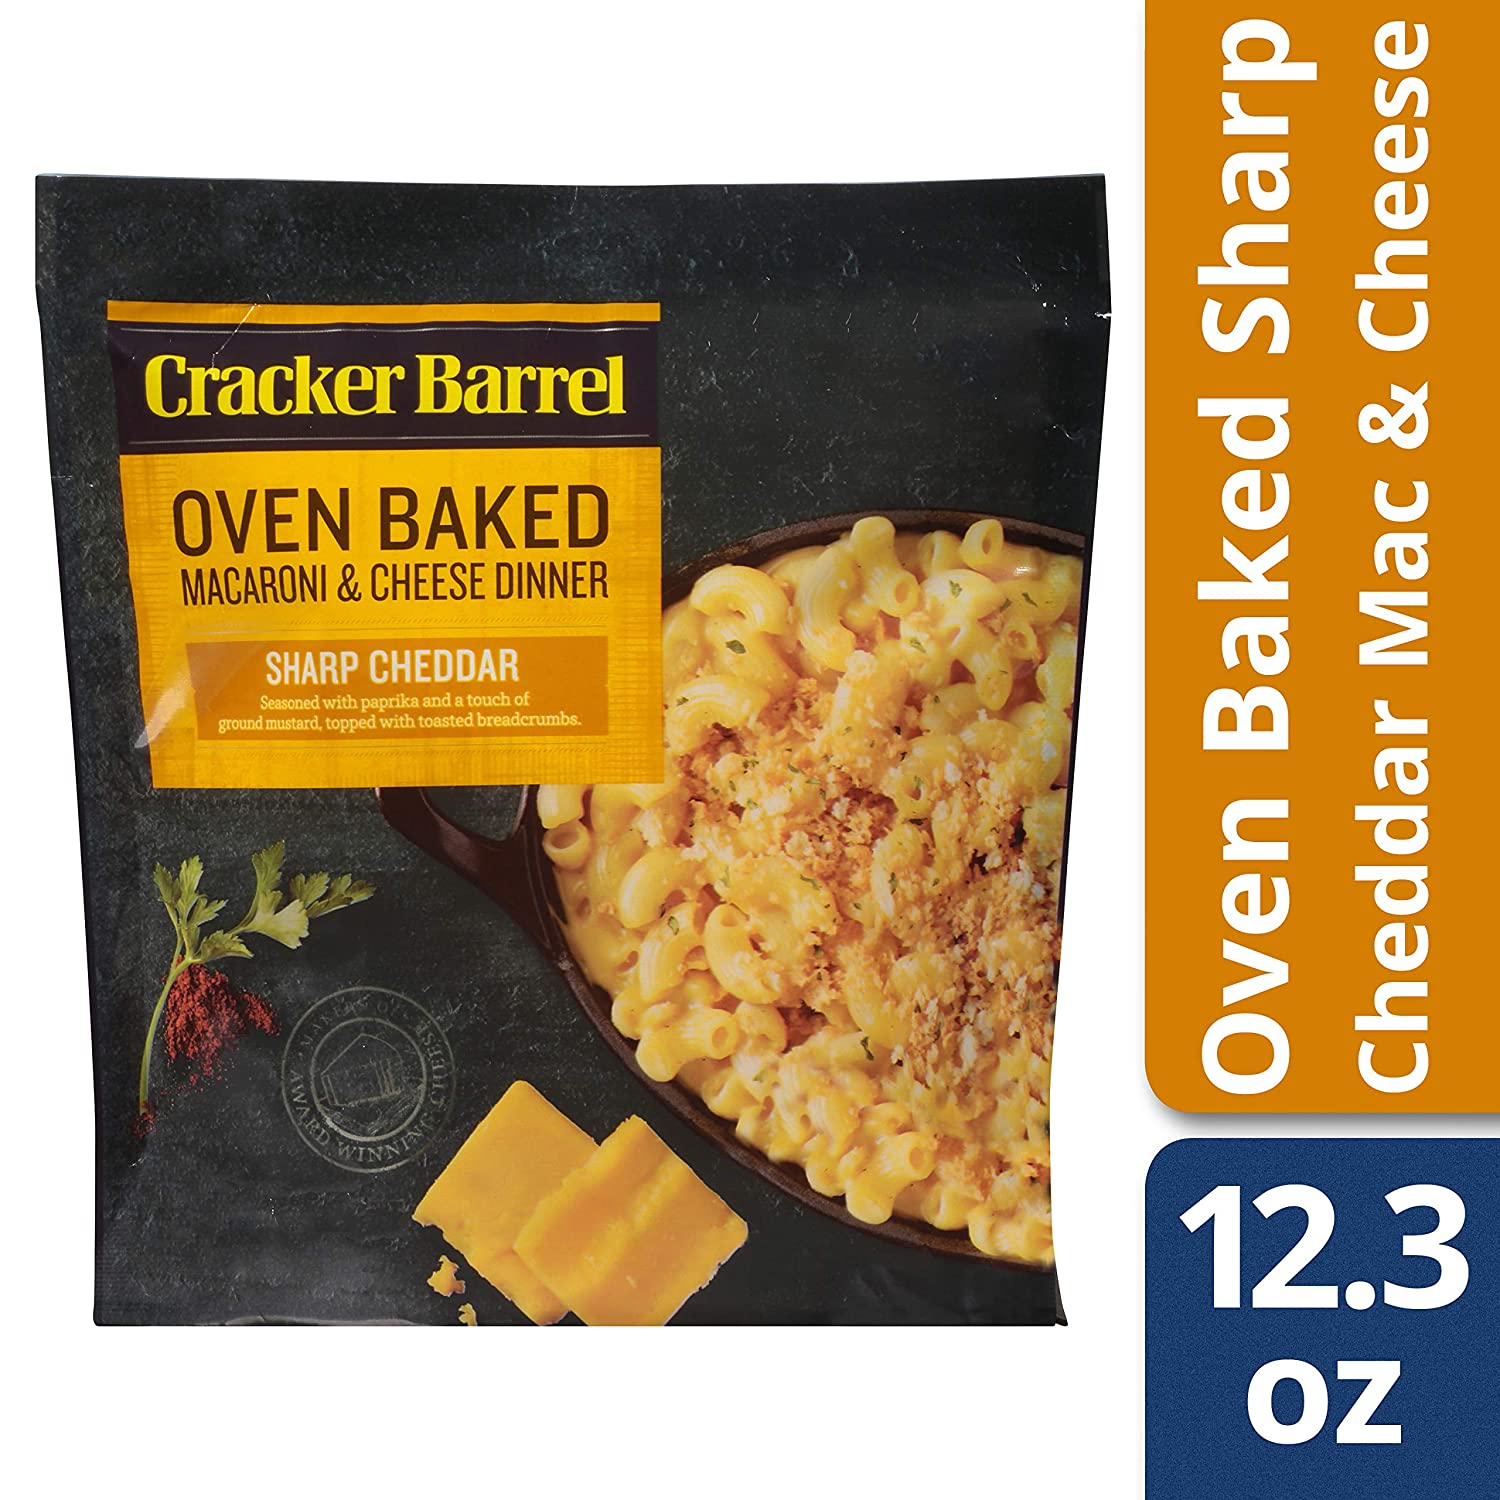 Cracker Barrel Oven Baked Sharp Cheddar Macaroni and Cheese Dinner, 12.3 oz Pouch